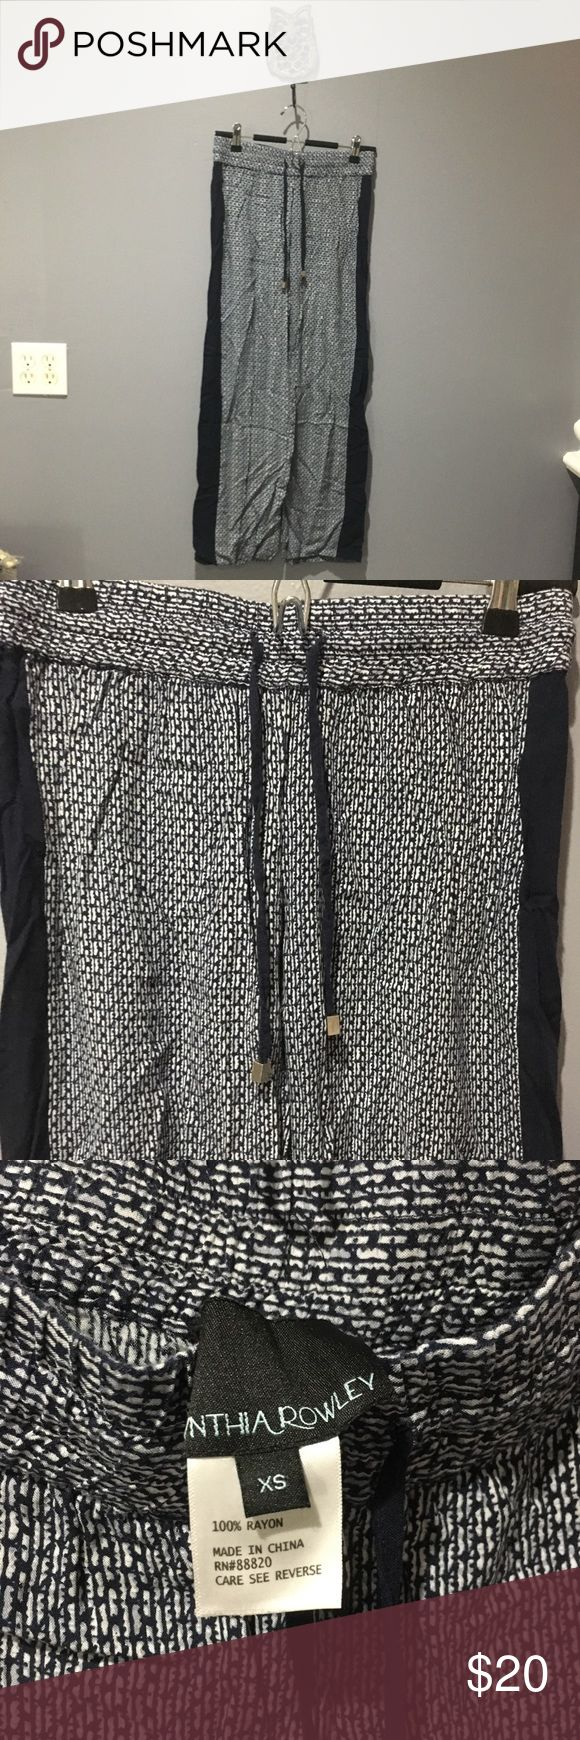 Cynthia Rowley Loose Print Pants In good condition, very comfortable.  🚫 No Trades or Low-balls!   ✅ Yes to Reasonable Offers and Discounts on Bundles Cynthia Rowley Pants Wide Leg